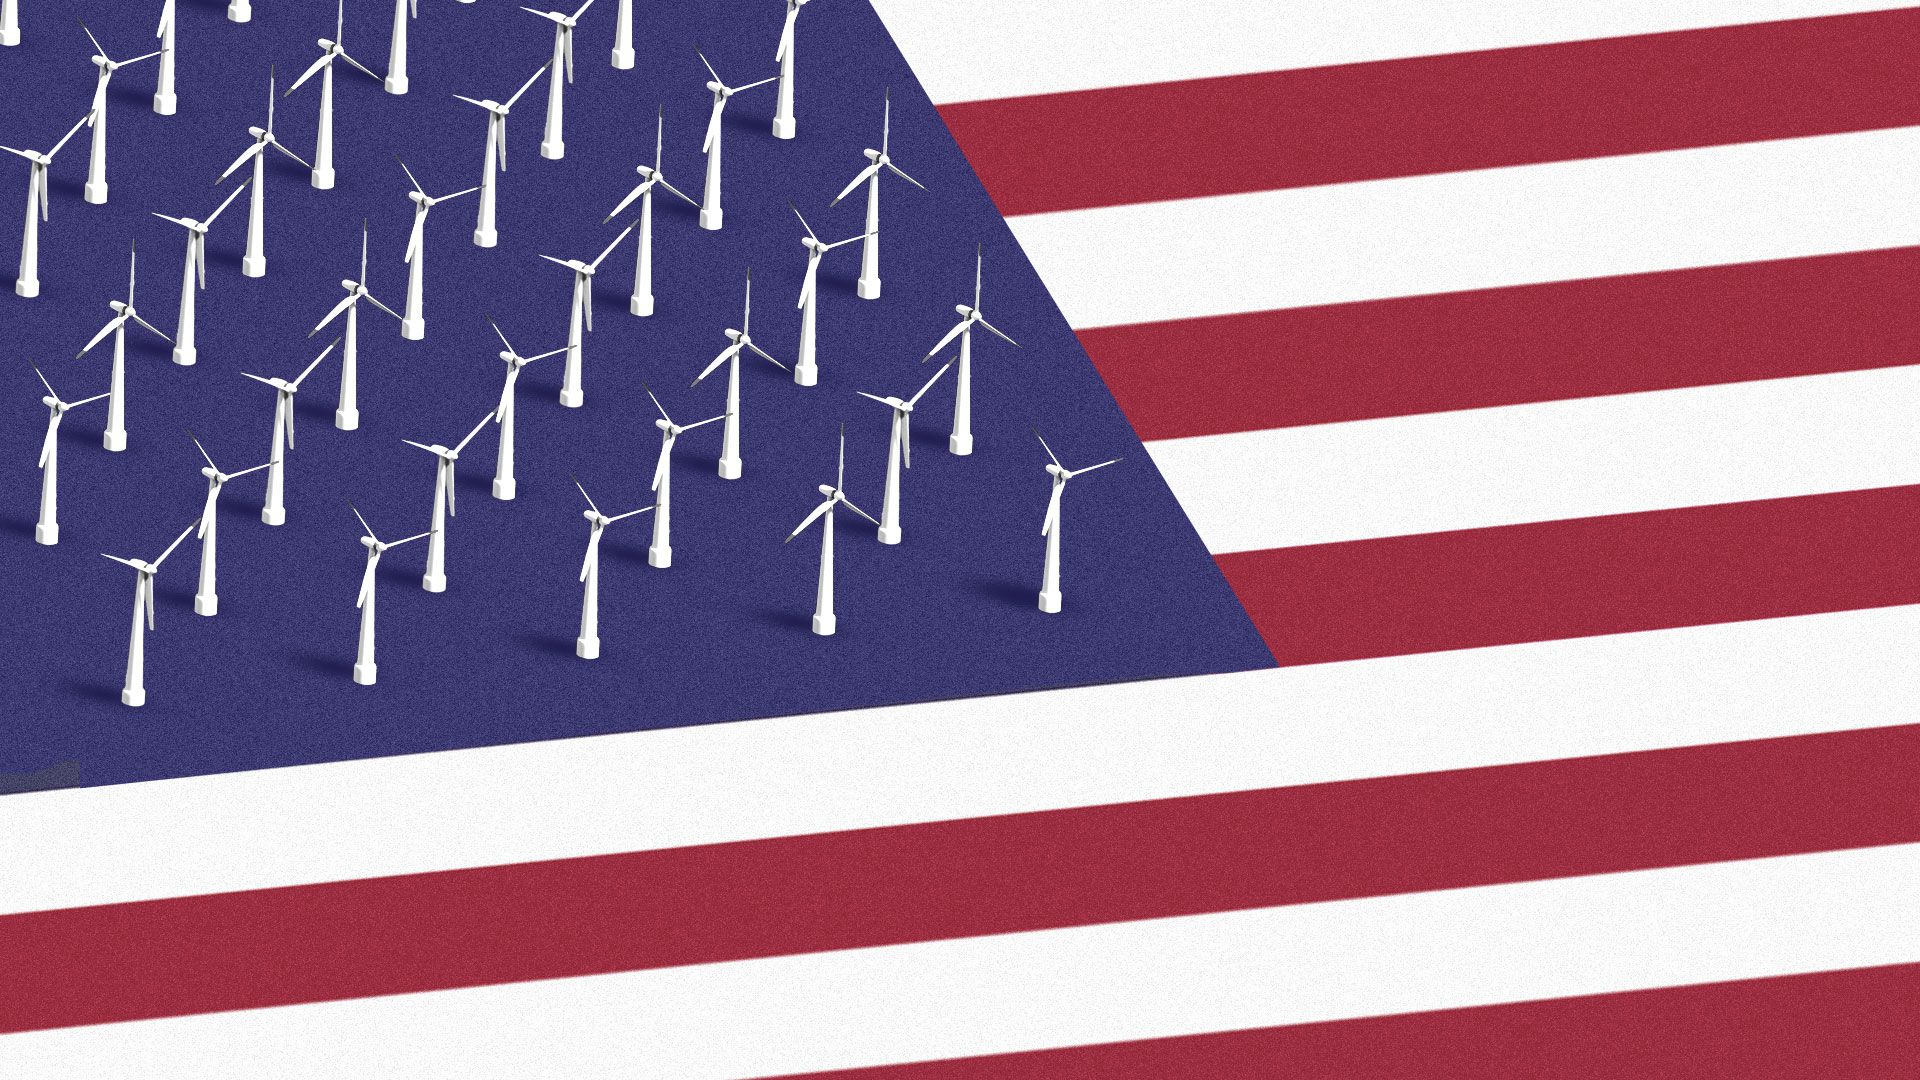 Big energy companies like Equinor and Shell are finally bringing offshore wind to the U.S.